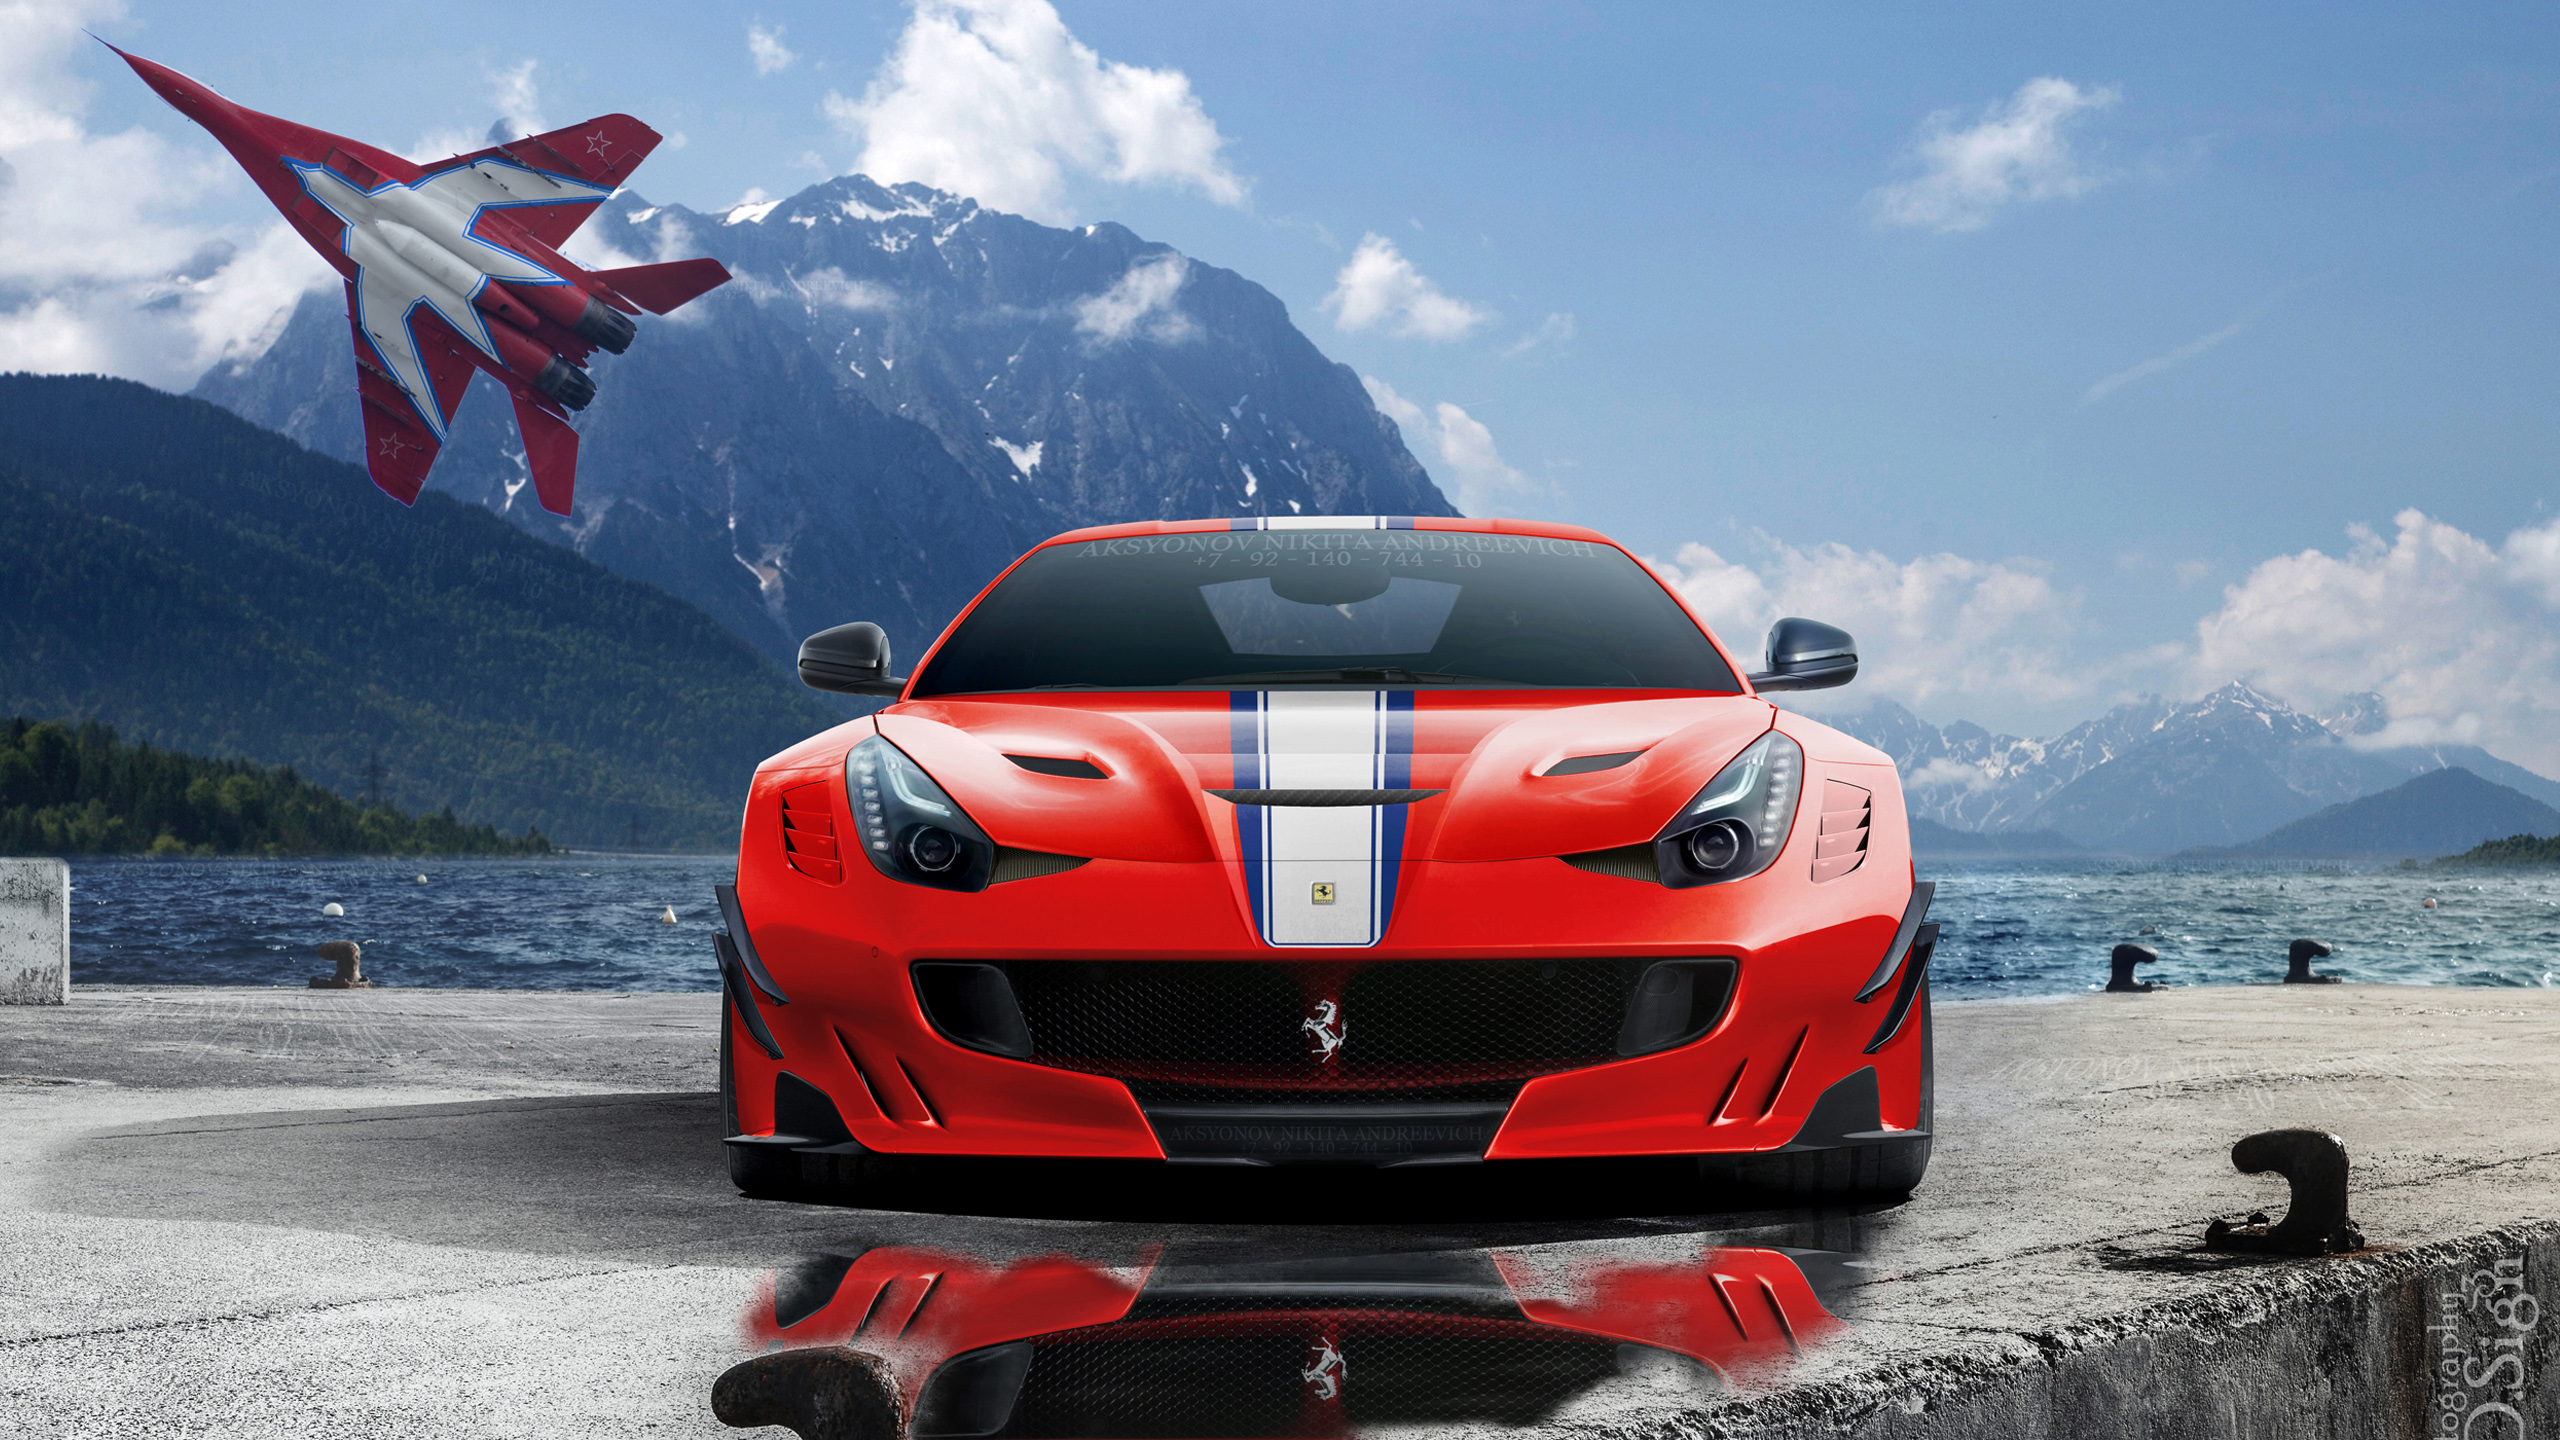 F12 Ferrari F12tdf Speciale Wallpaper Hd Car Wallpapers